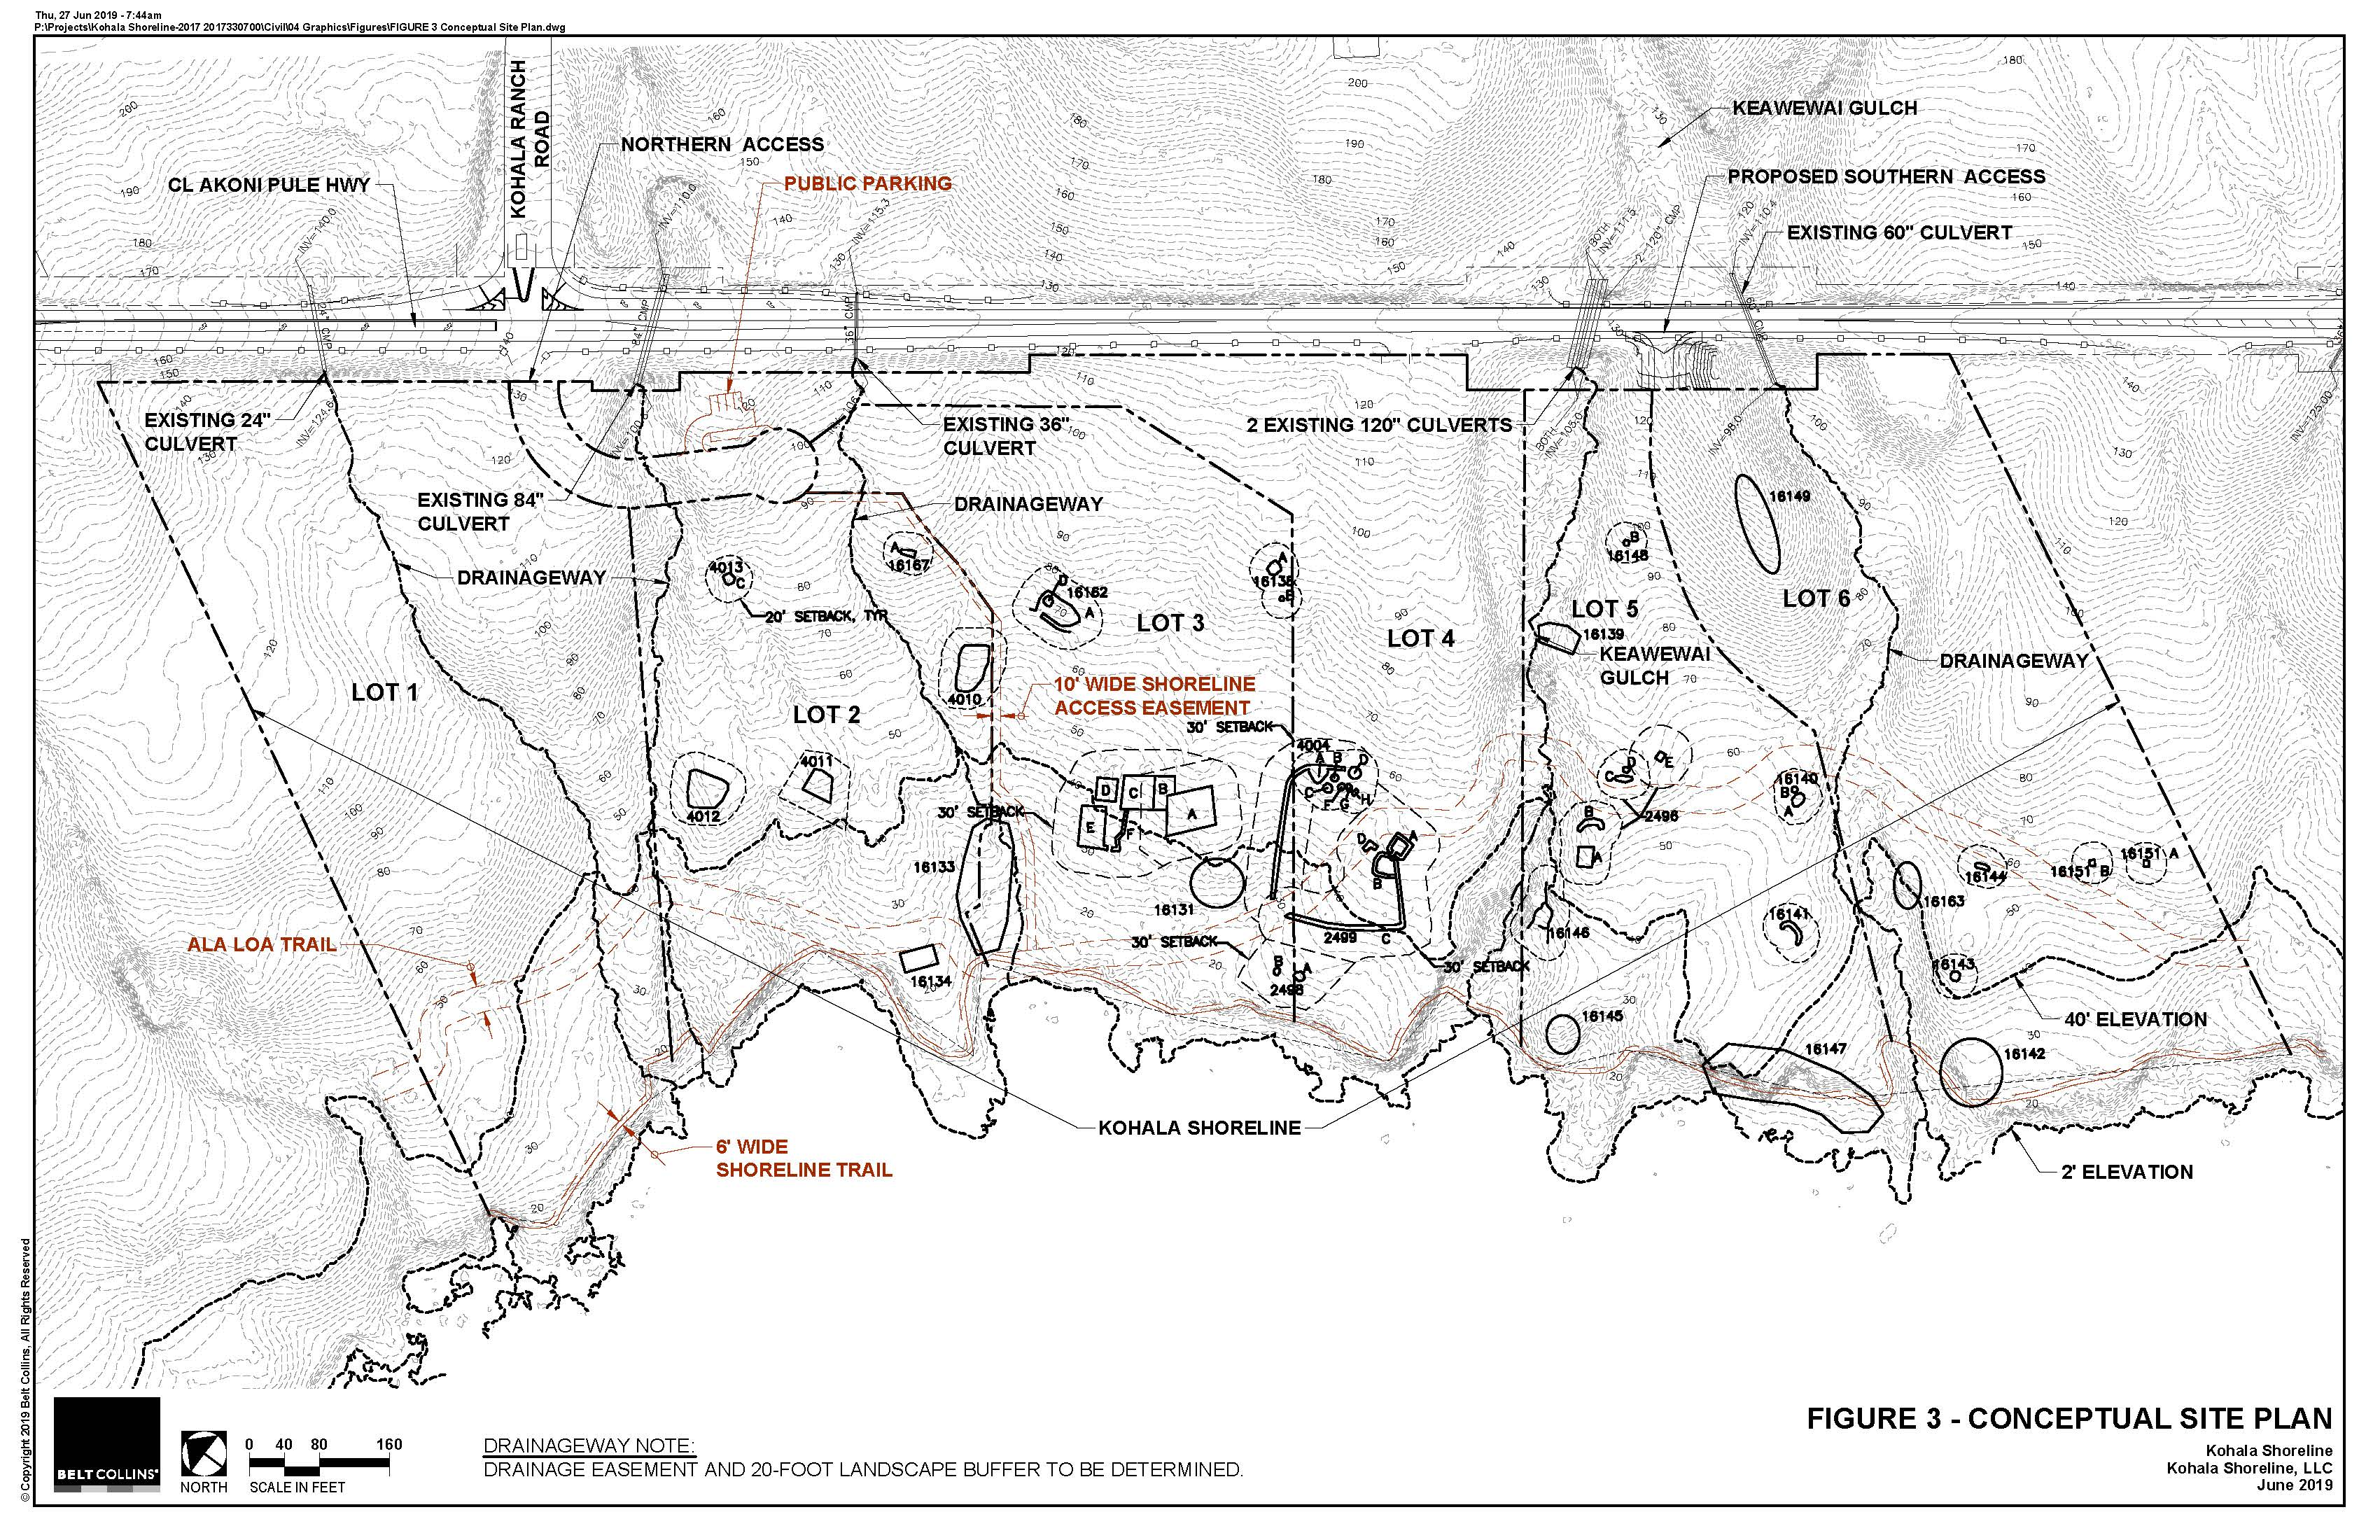 Map from 2019-08-08-HA-FEA-Kohala-Shoreline-6-lot-Subdivision